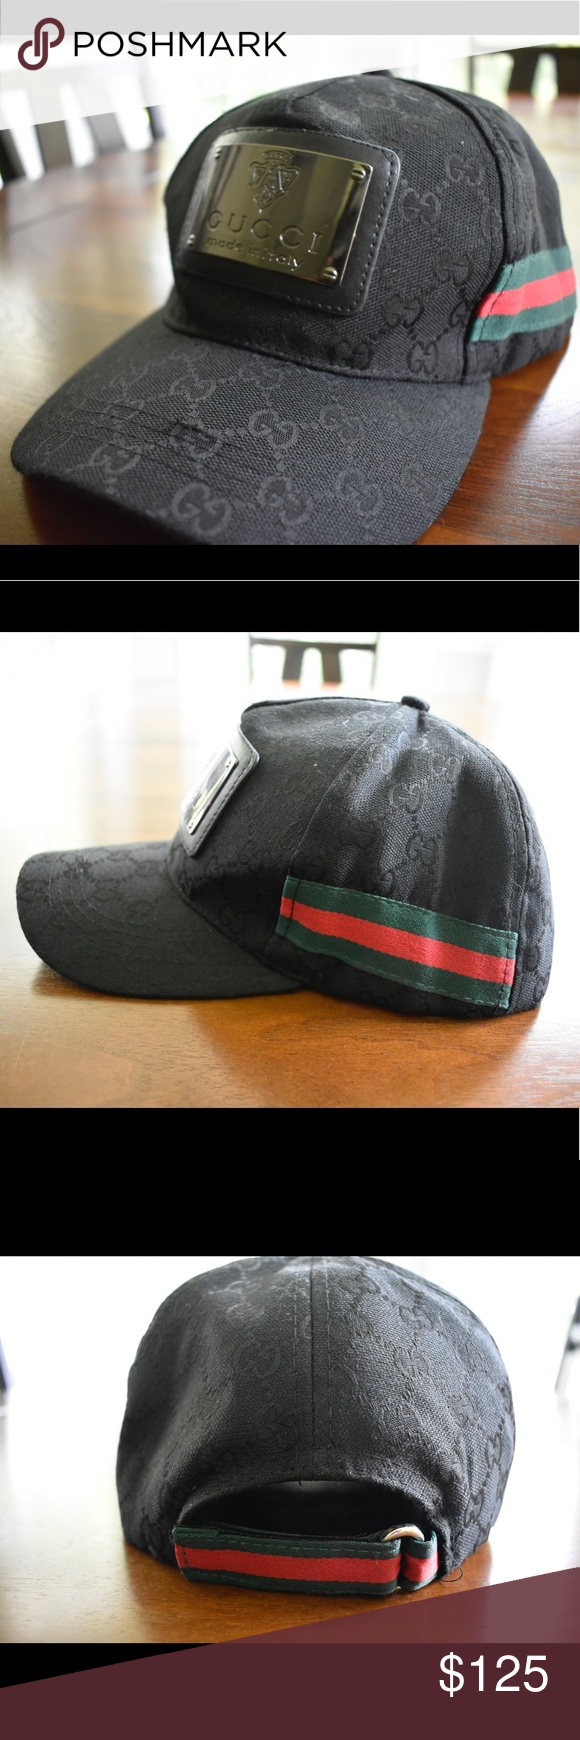 68eba4a15734 Gucci baseball cap Black Gucci hat with green and red side bands. Metal